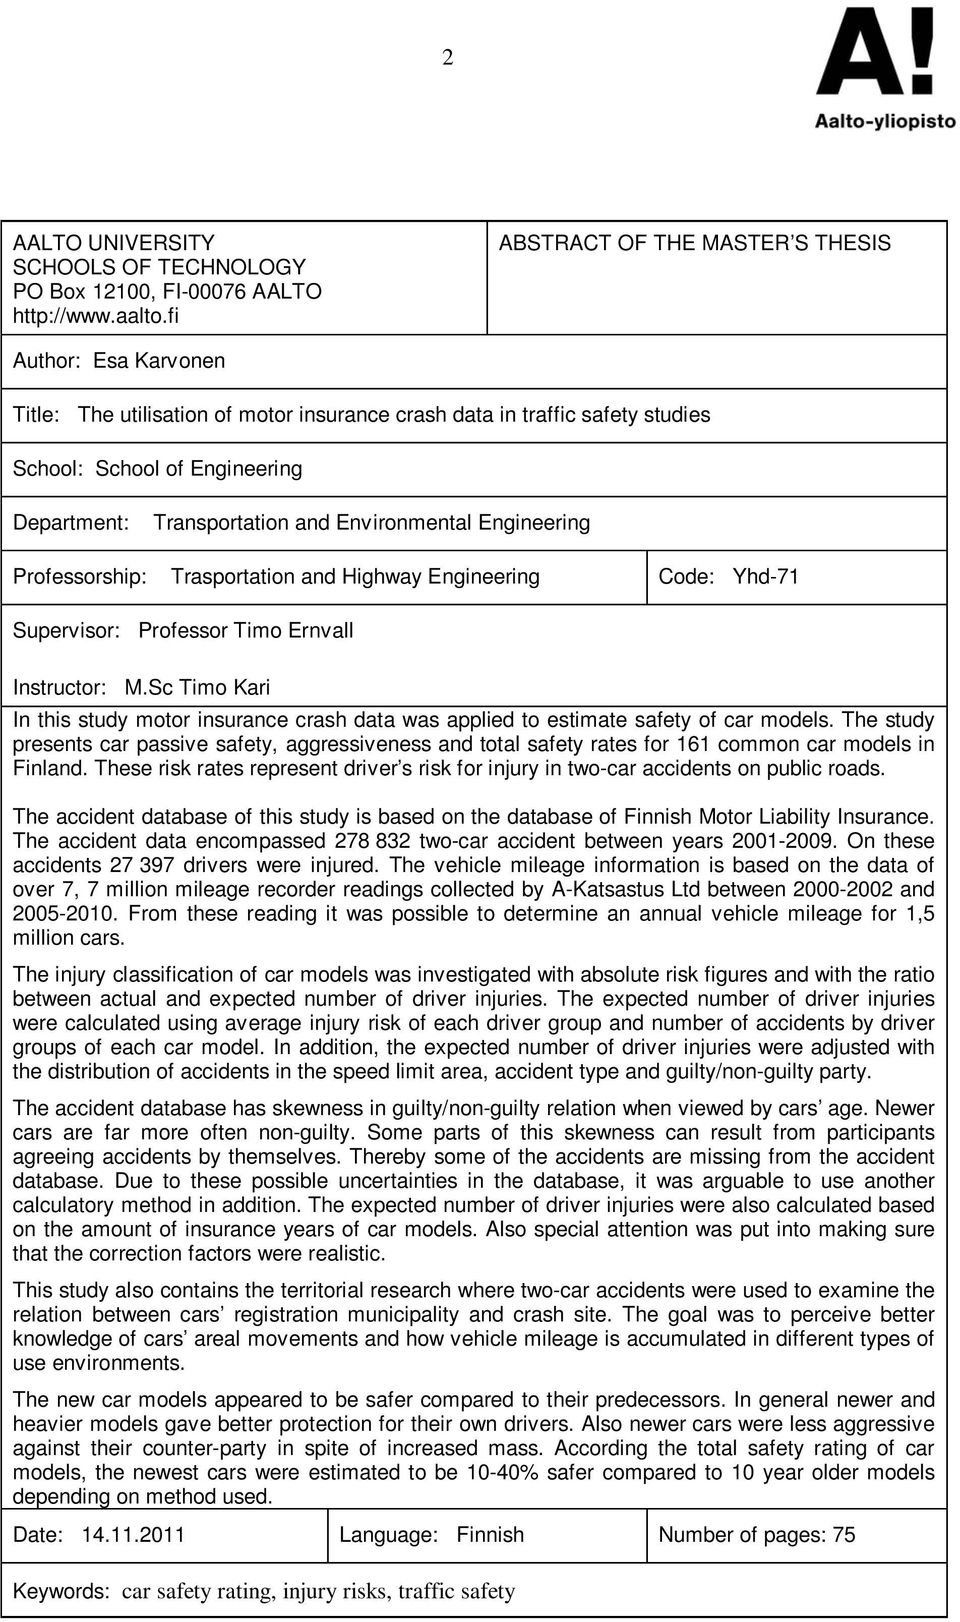 Environmental Engineering Professorship: Trasportation and Highway Engineering Code: Yhd-71 Supervisor: Professor Timo Ernvall Instructor: M.